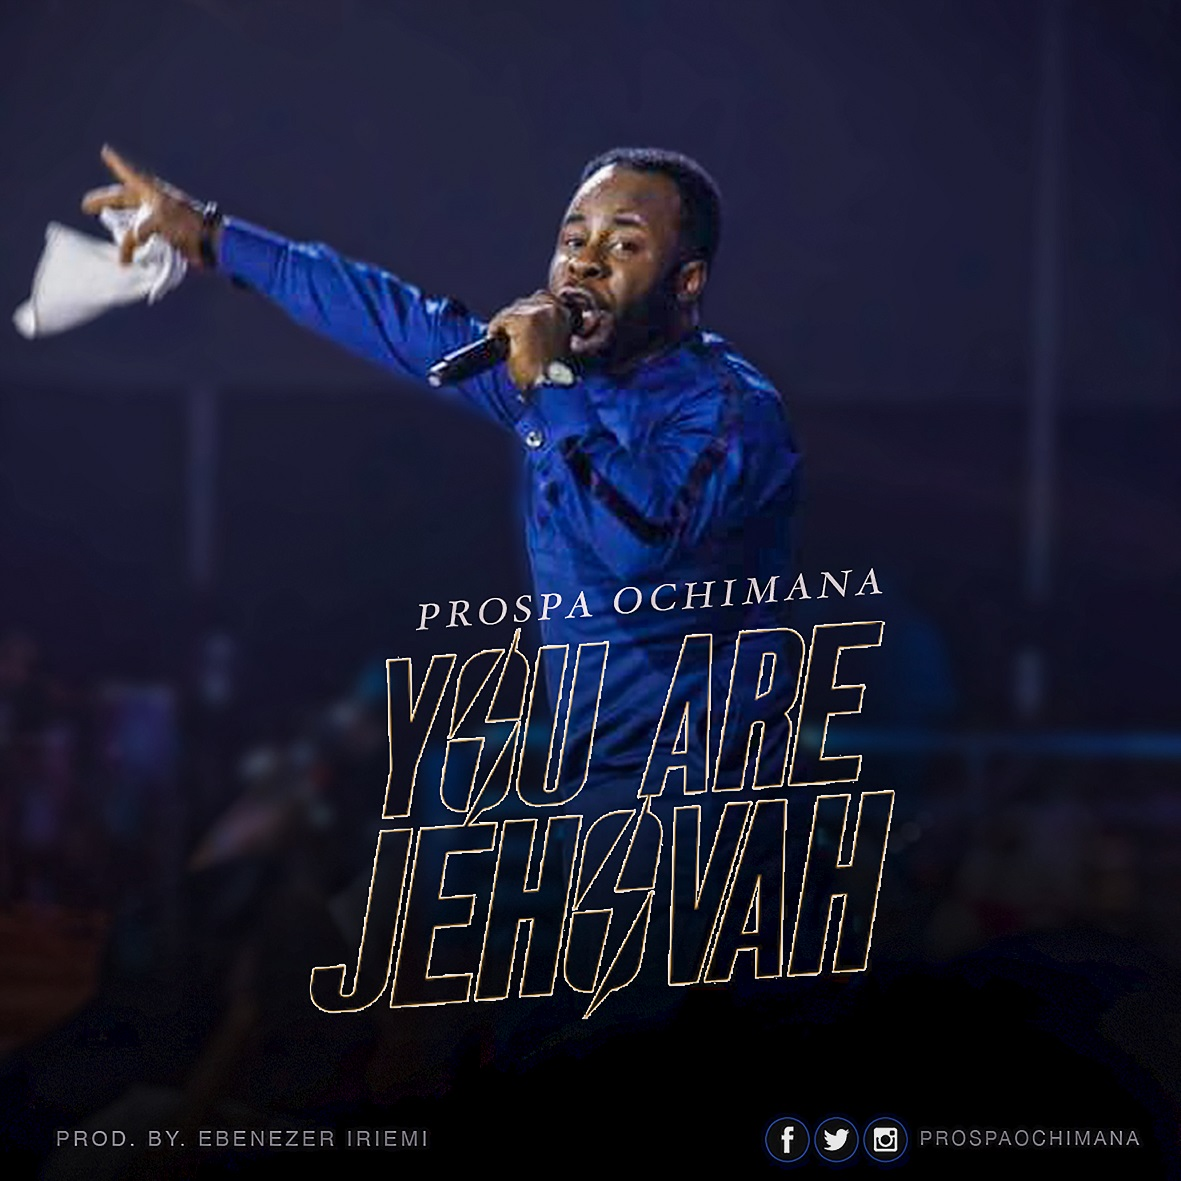 YOU ARE JEHOVAH BY PROSPA OCHIMANA | @PROSPAOCHIMANA